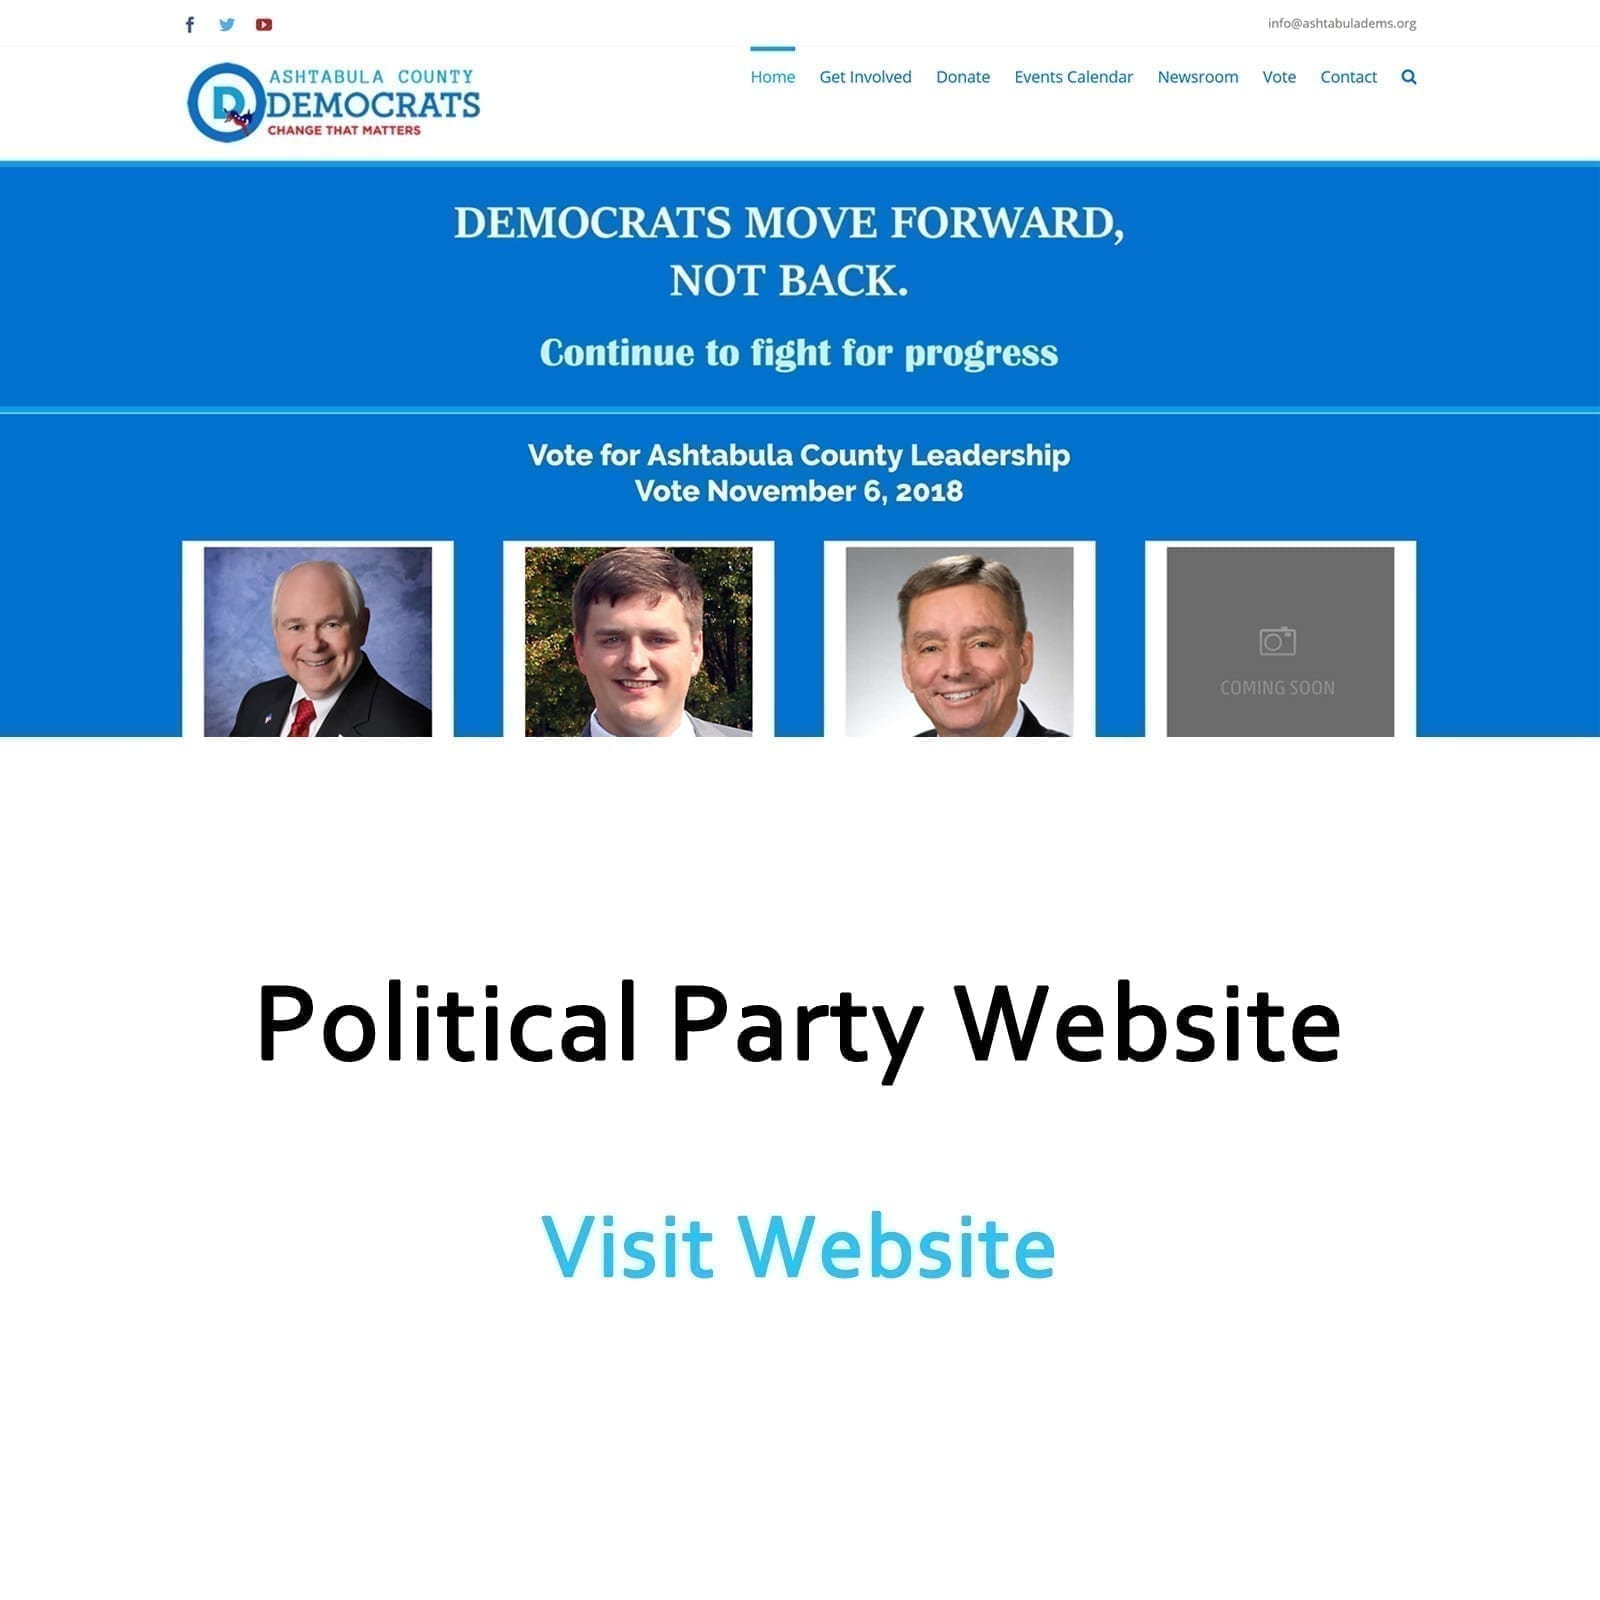 Political Party Website